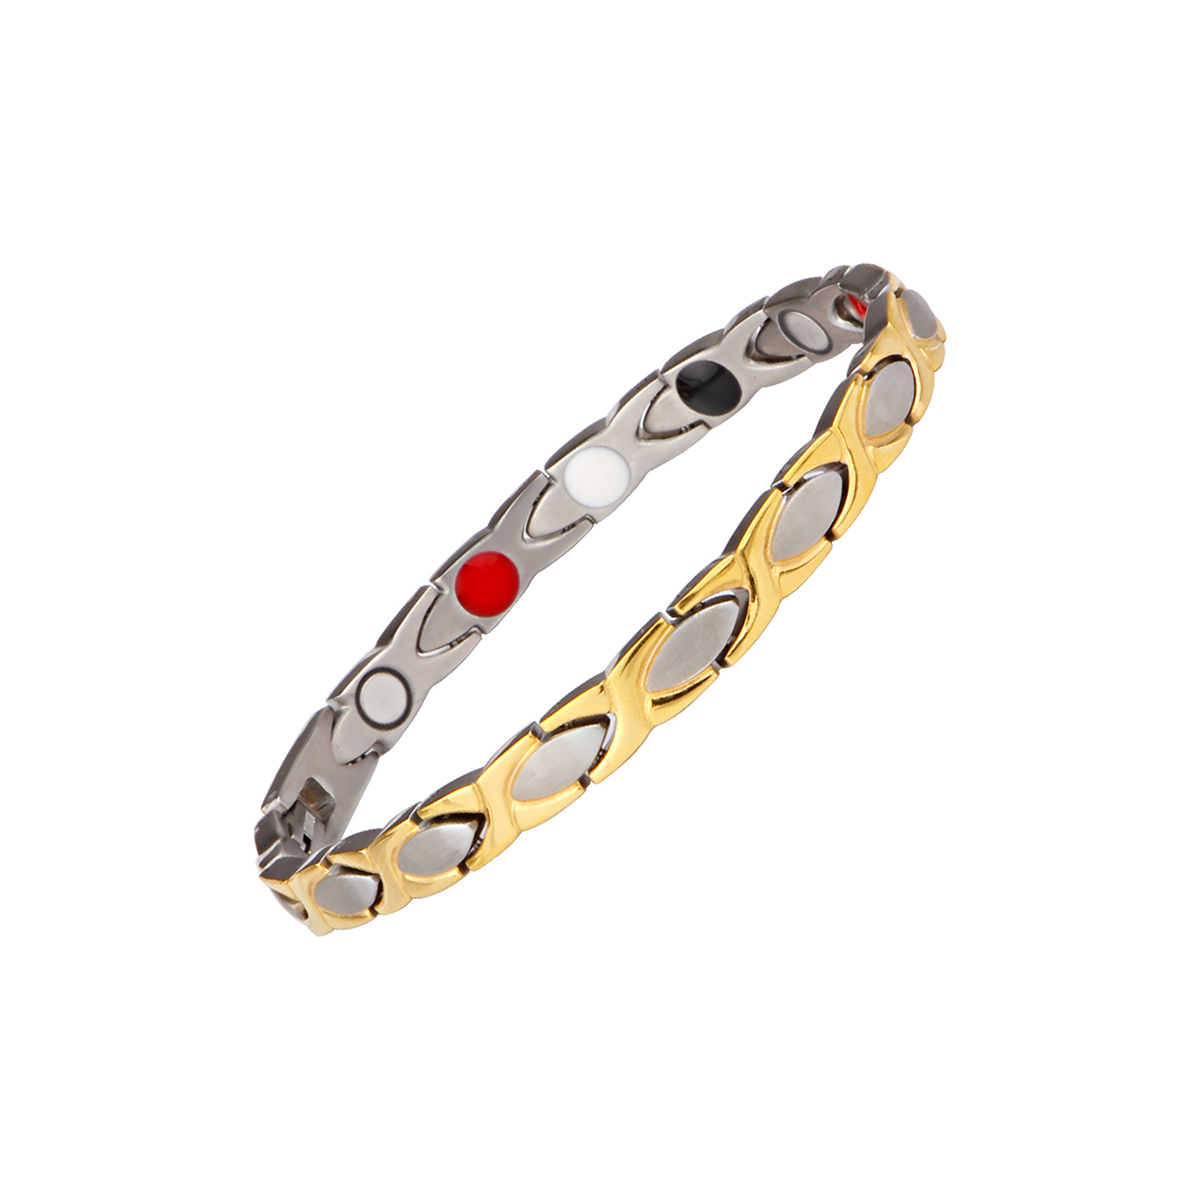 Magnetic Therapy 316L Stainless Steel Full Magnets Or 4 In 1 Magnetic Bracelet